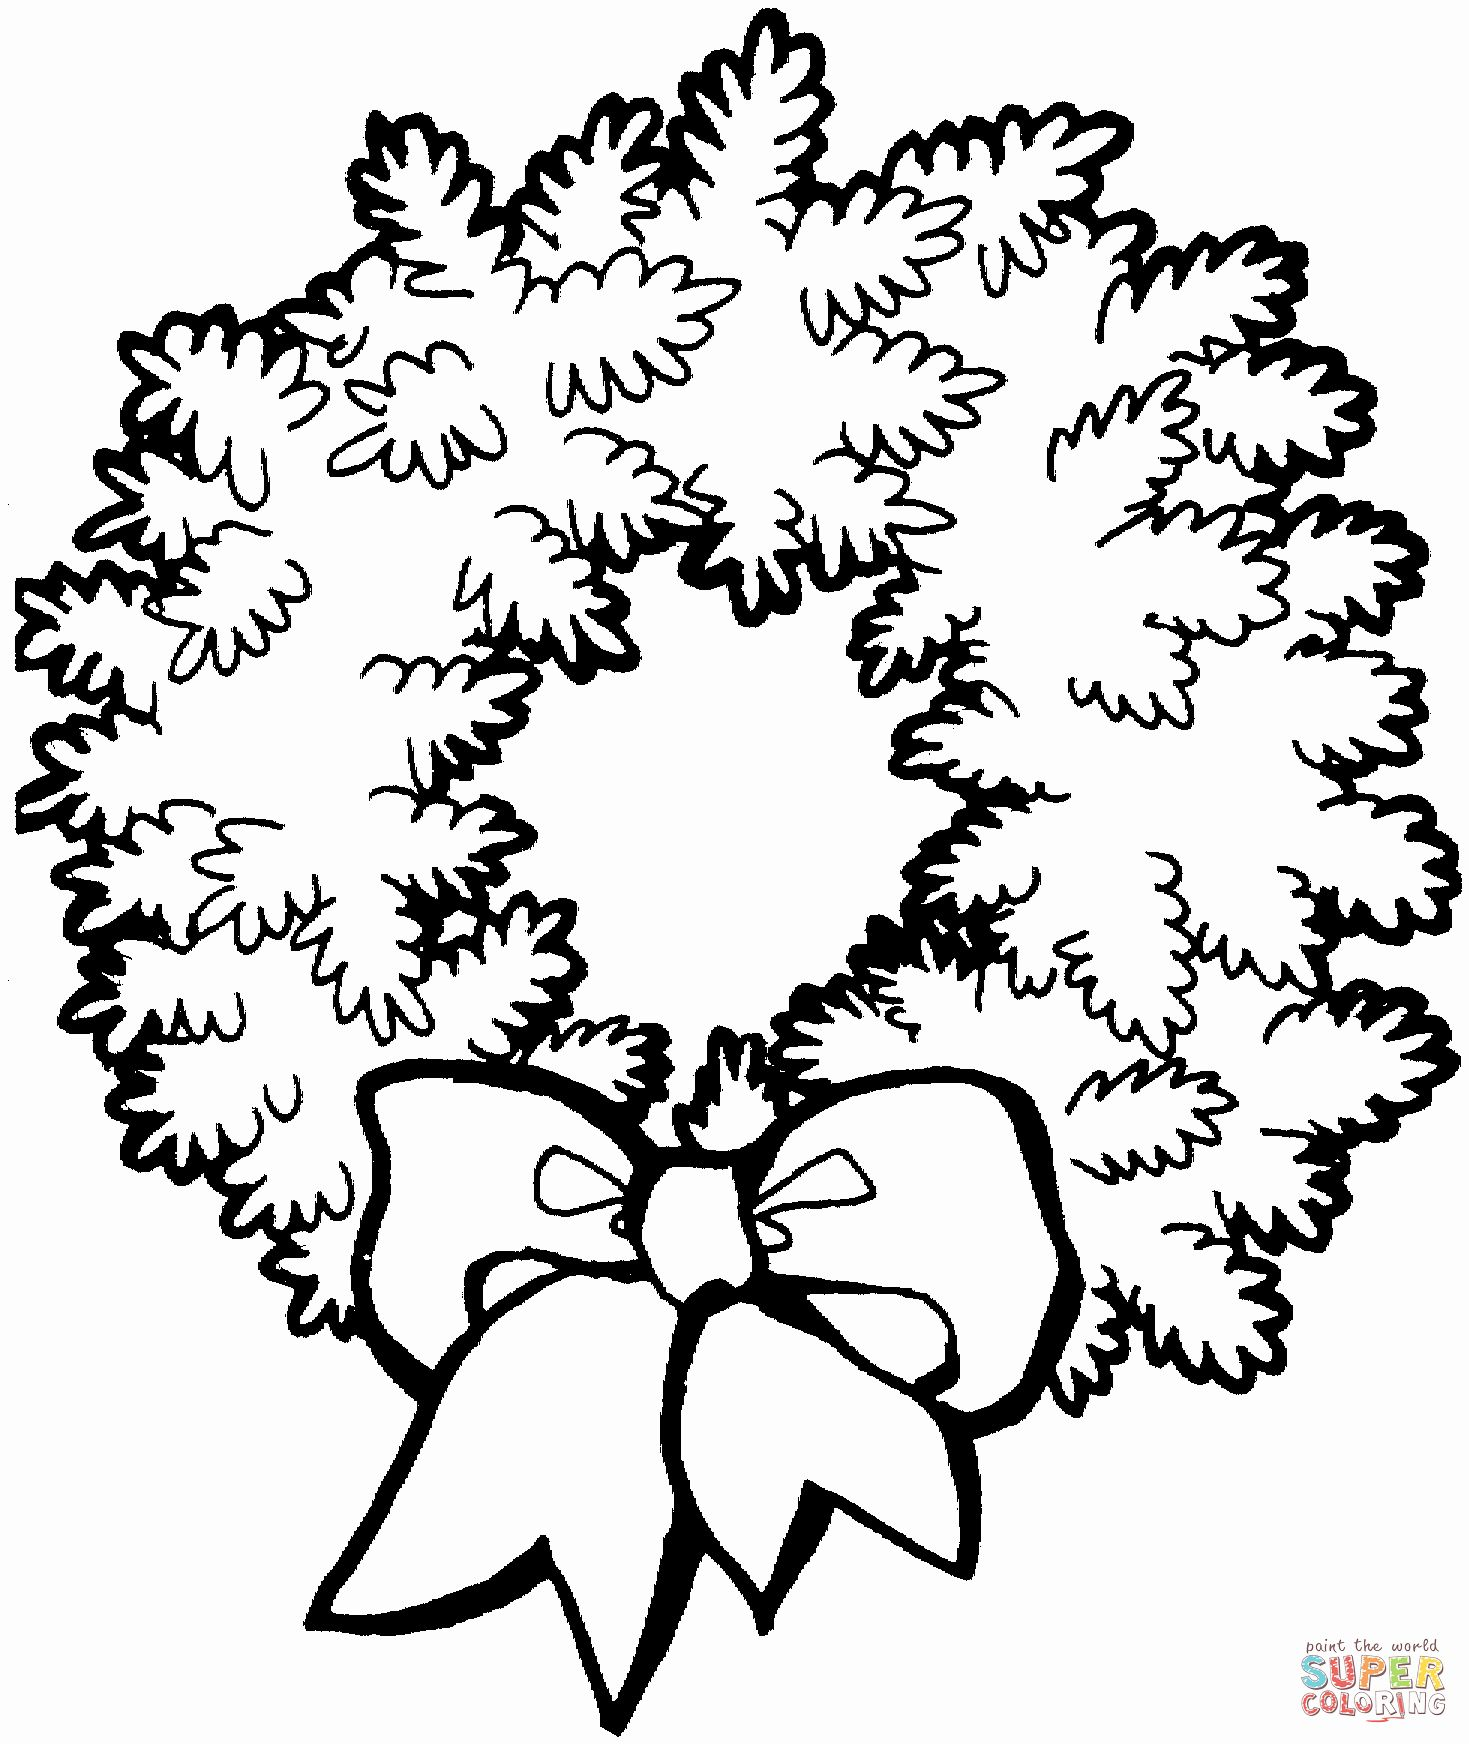 Advent Wreath Coloring Page New Cozy Advent Wreath Coloring Page Free Christmas Reci Christmas Wreath Clipart Printable Christmas Coloring Pages Wreath Drawing